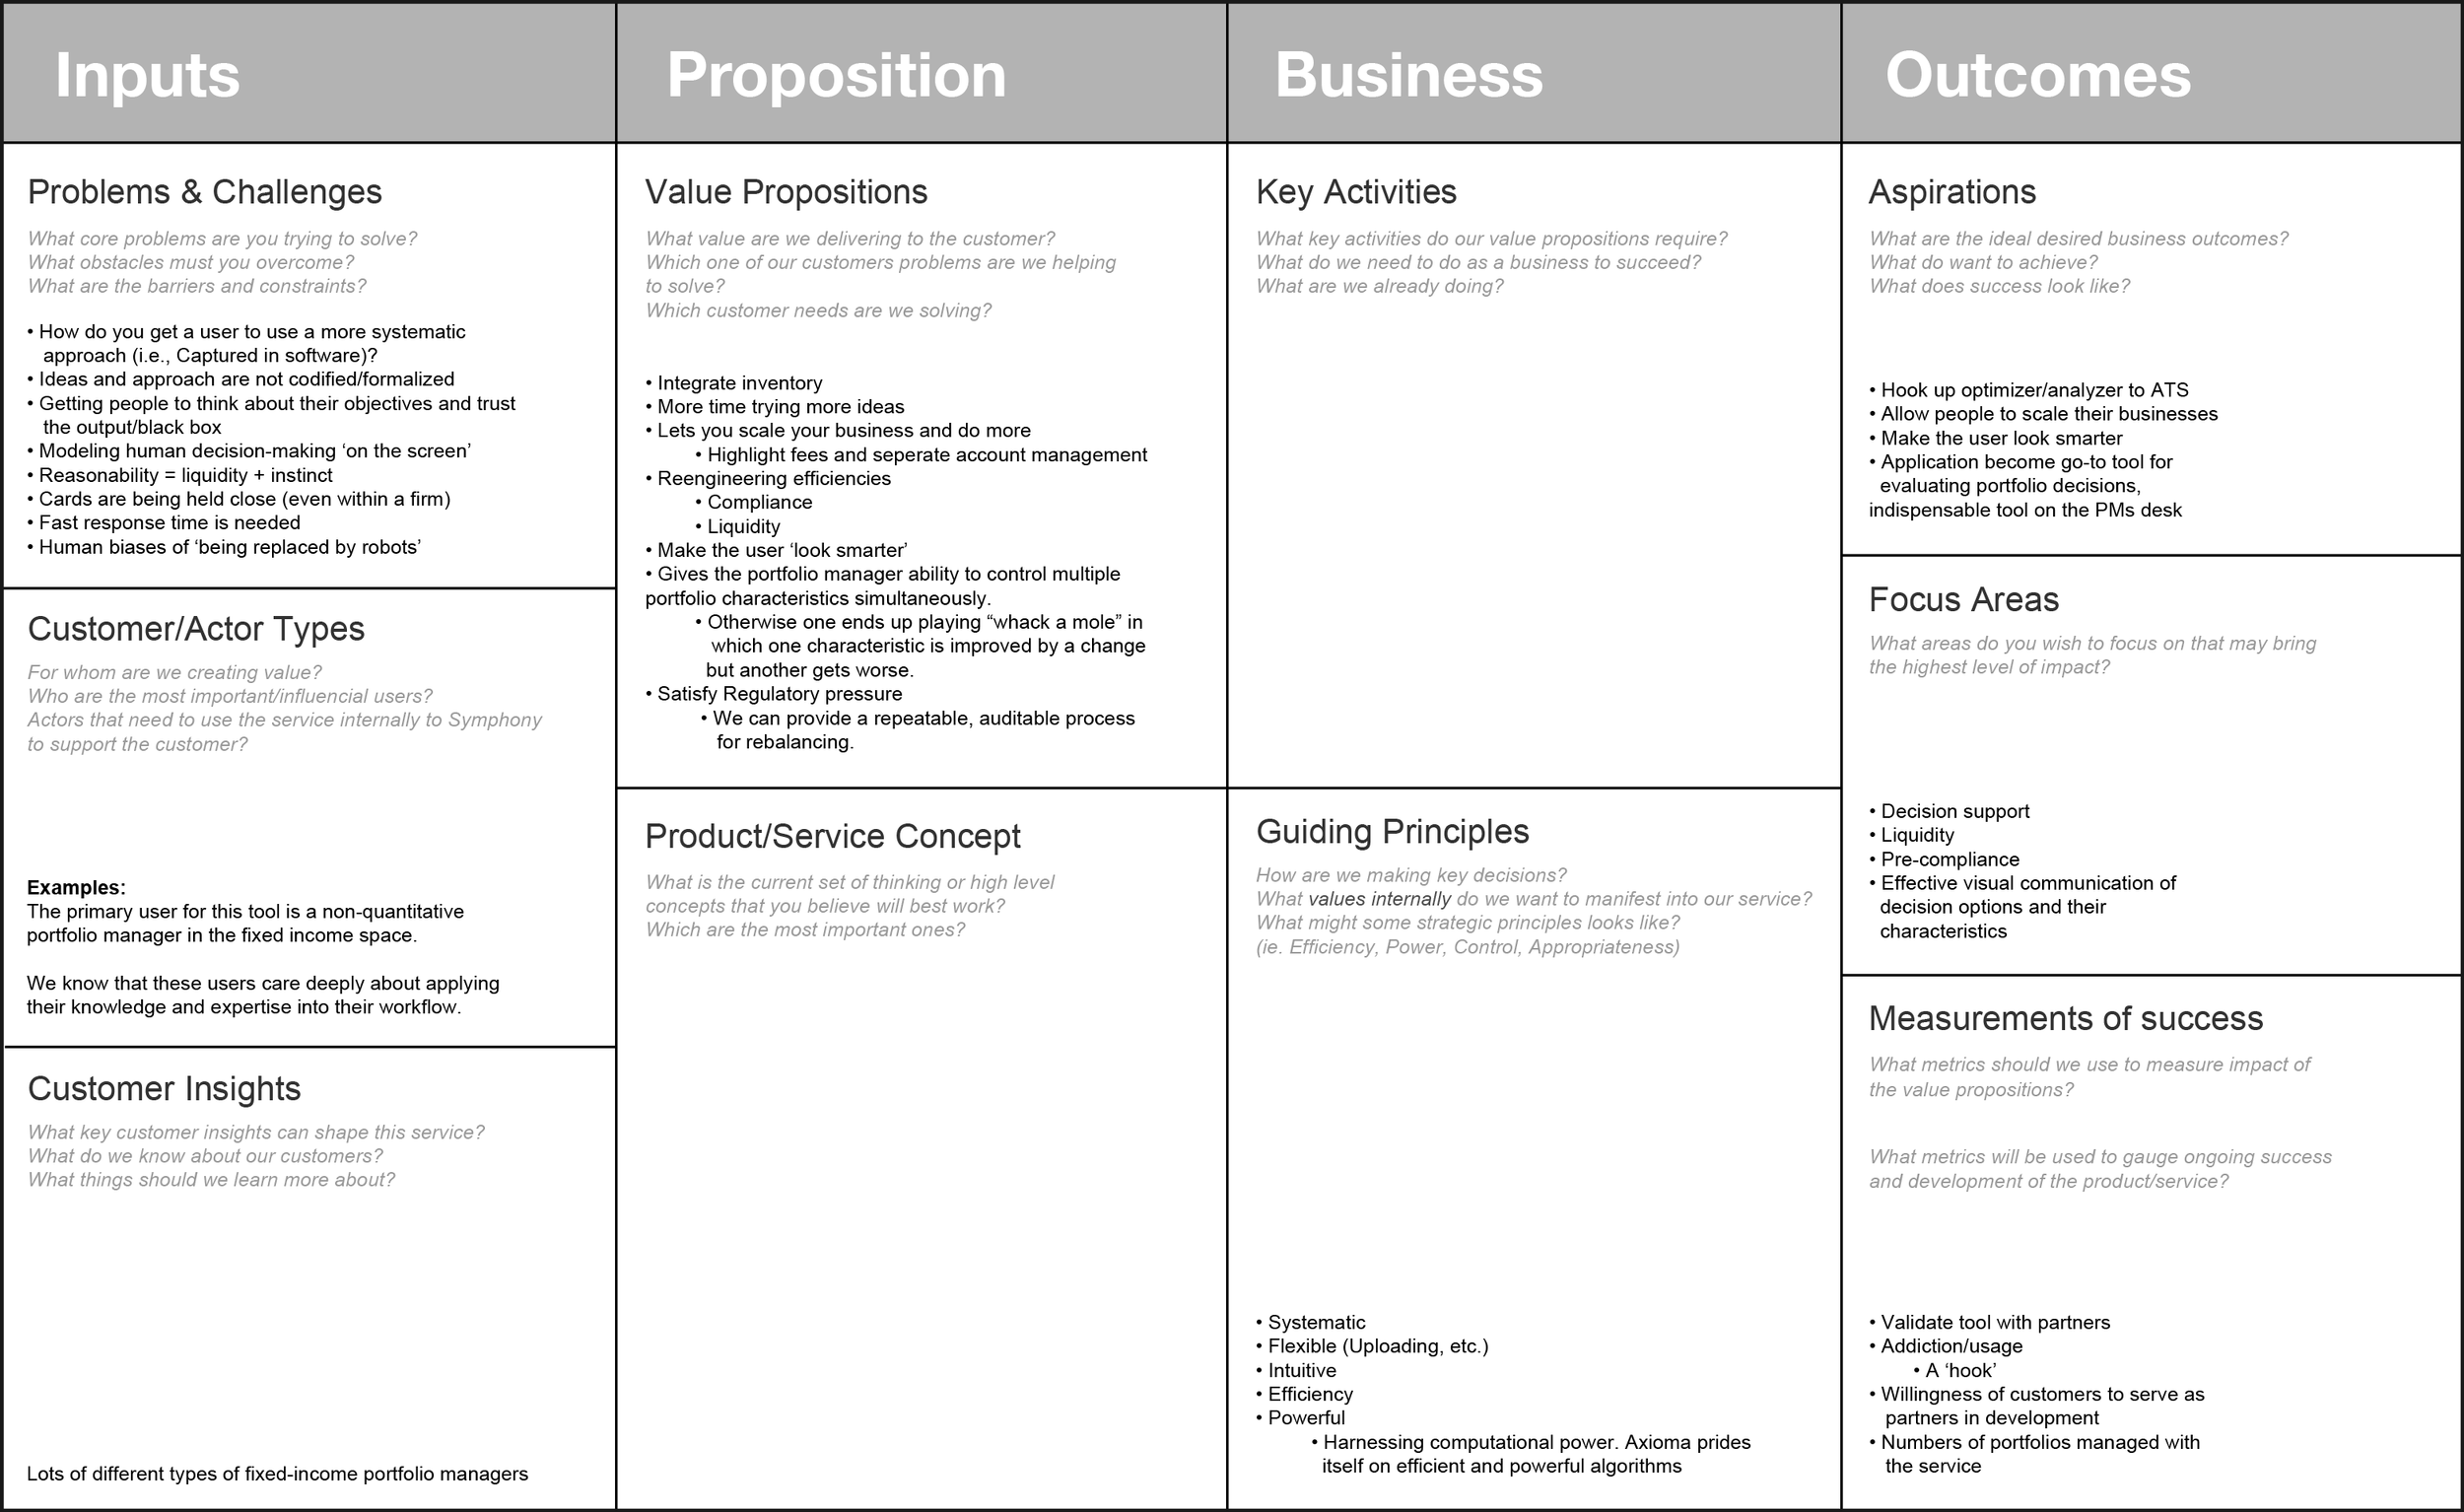 The service design canvas is a method of distilling the multitude of perspectives, goals and insights across the working group into a single, tangible point of reference.